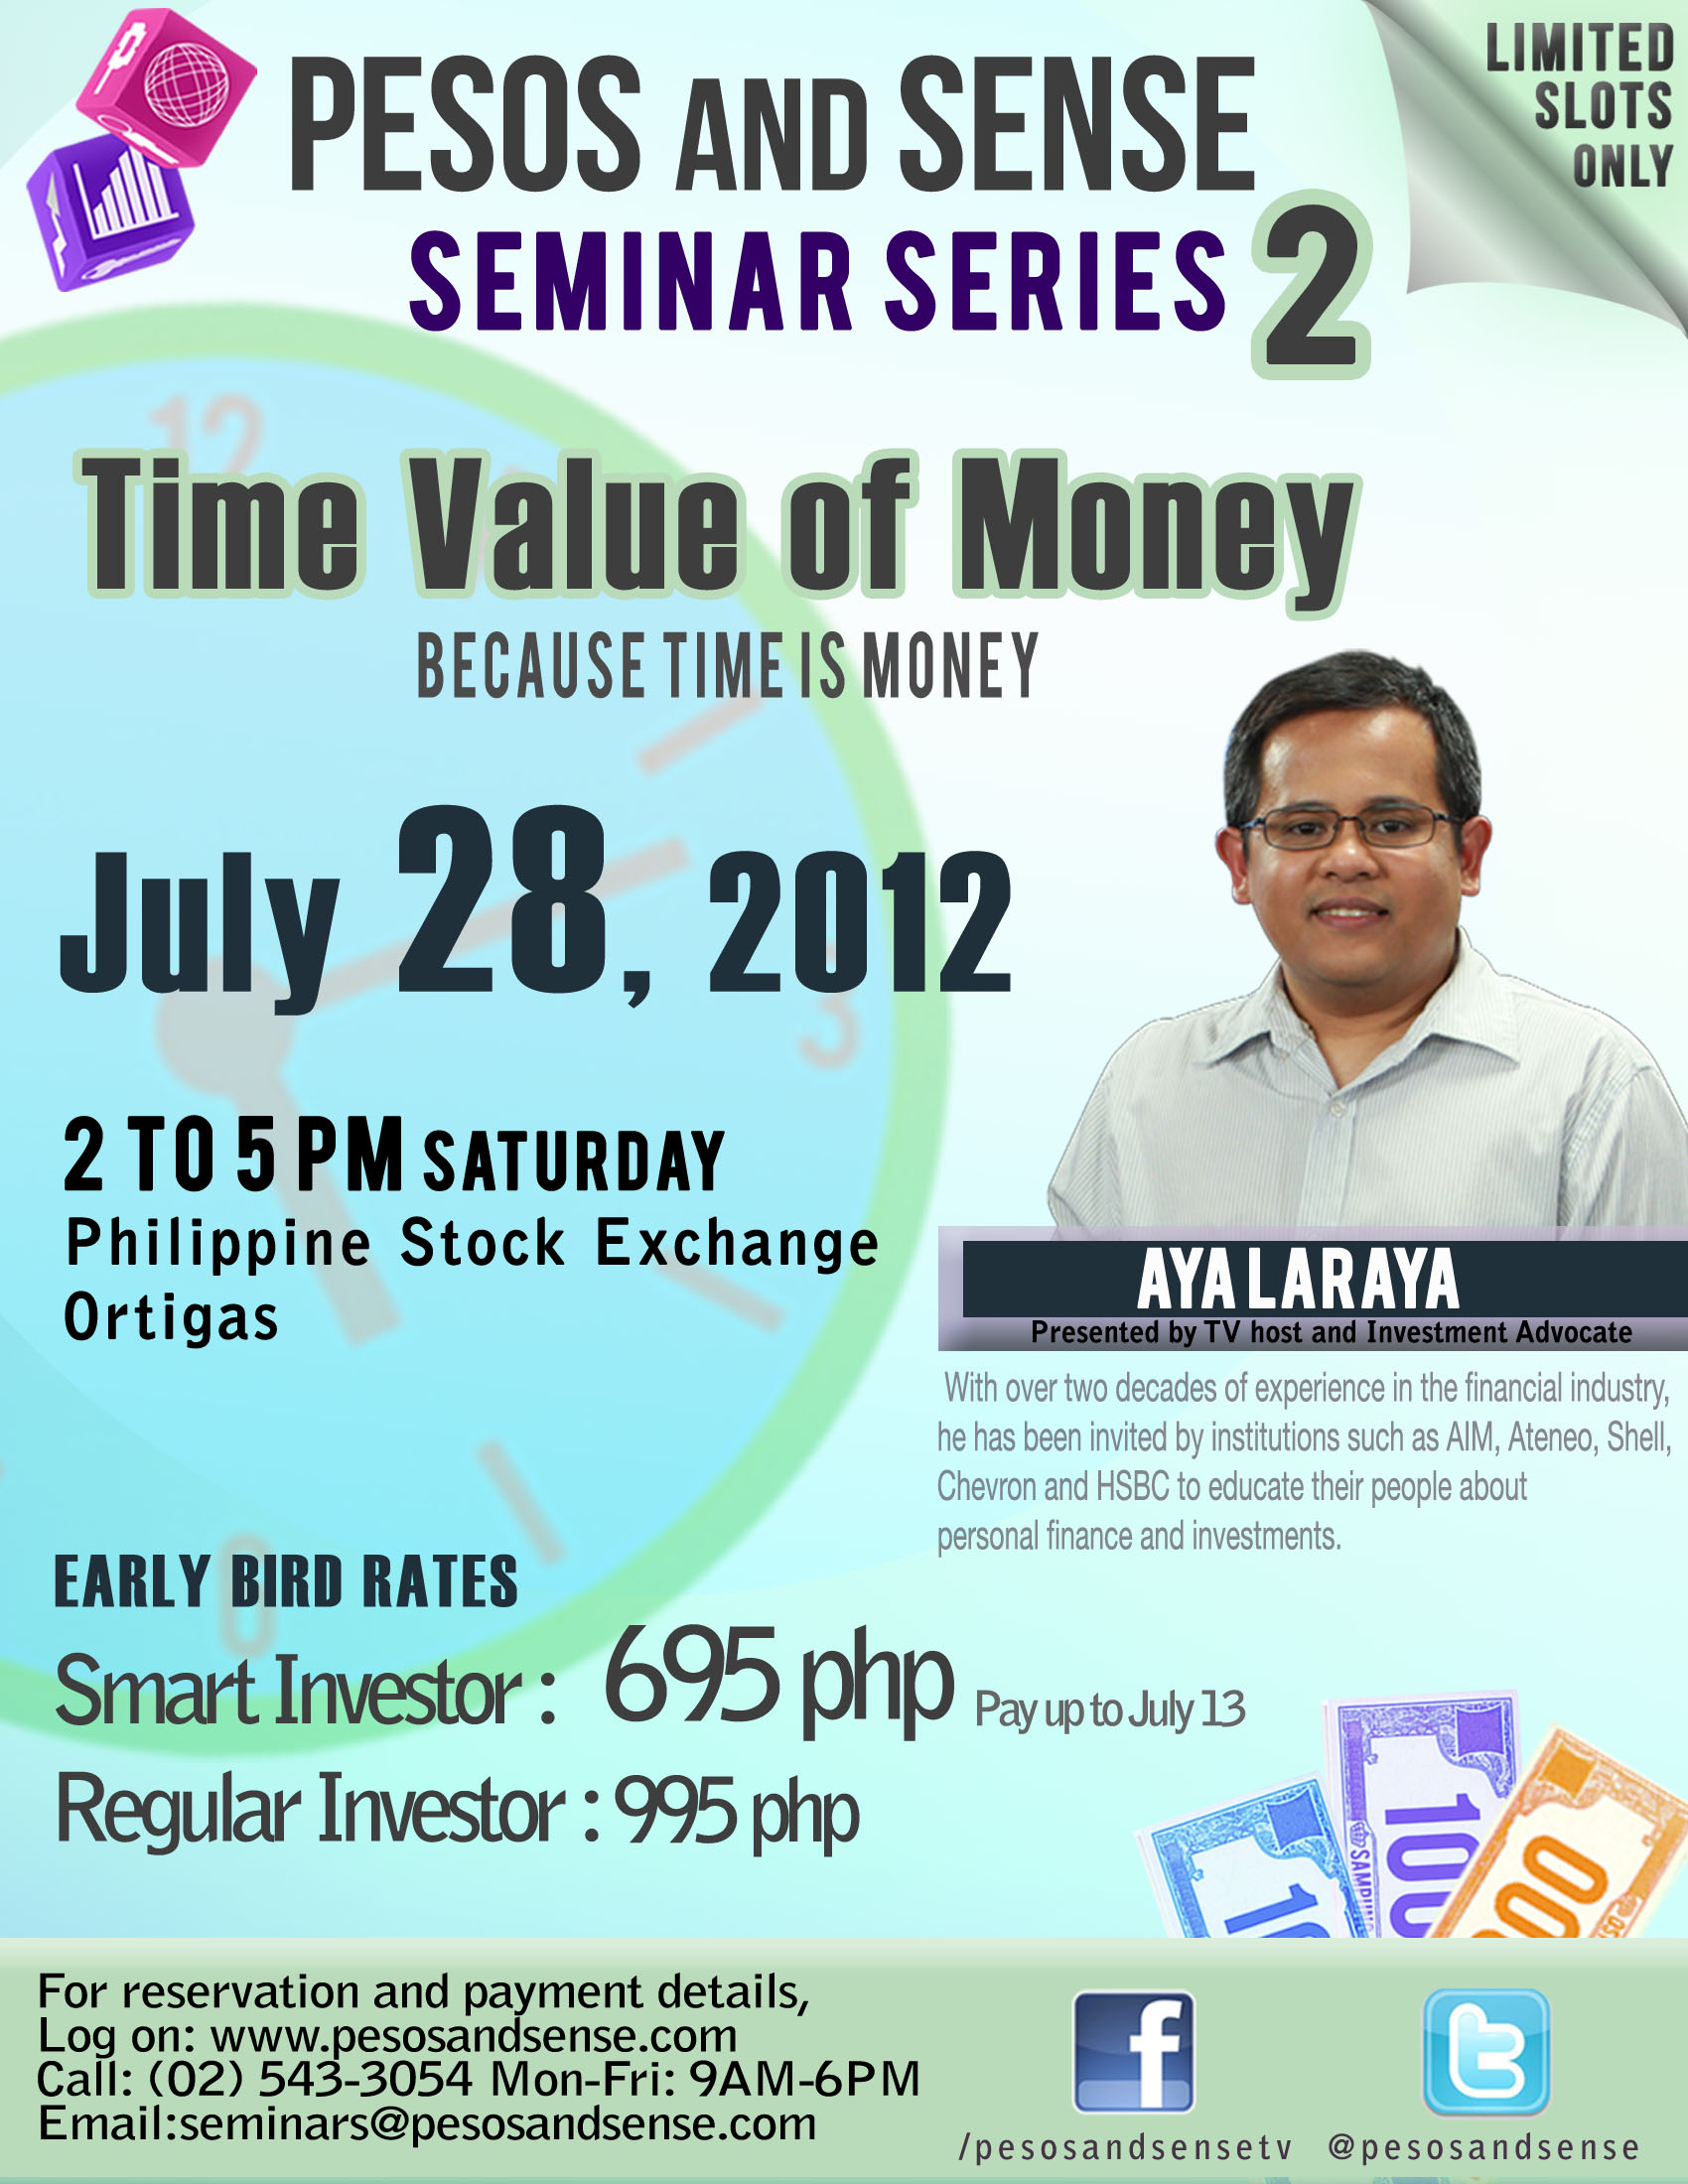 time value of money seminar